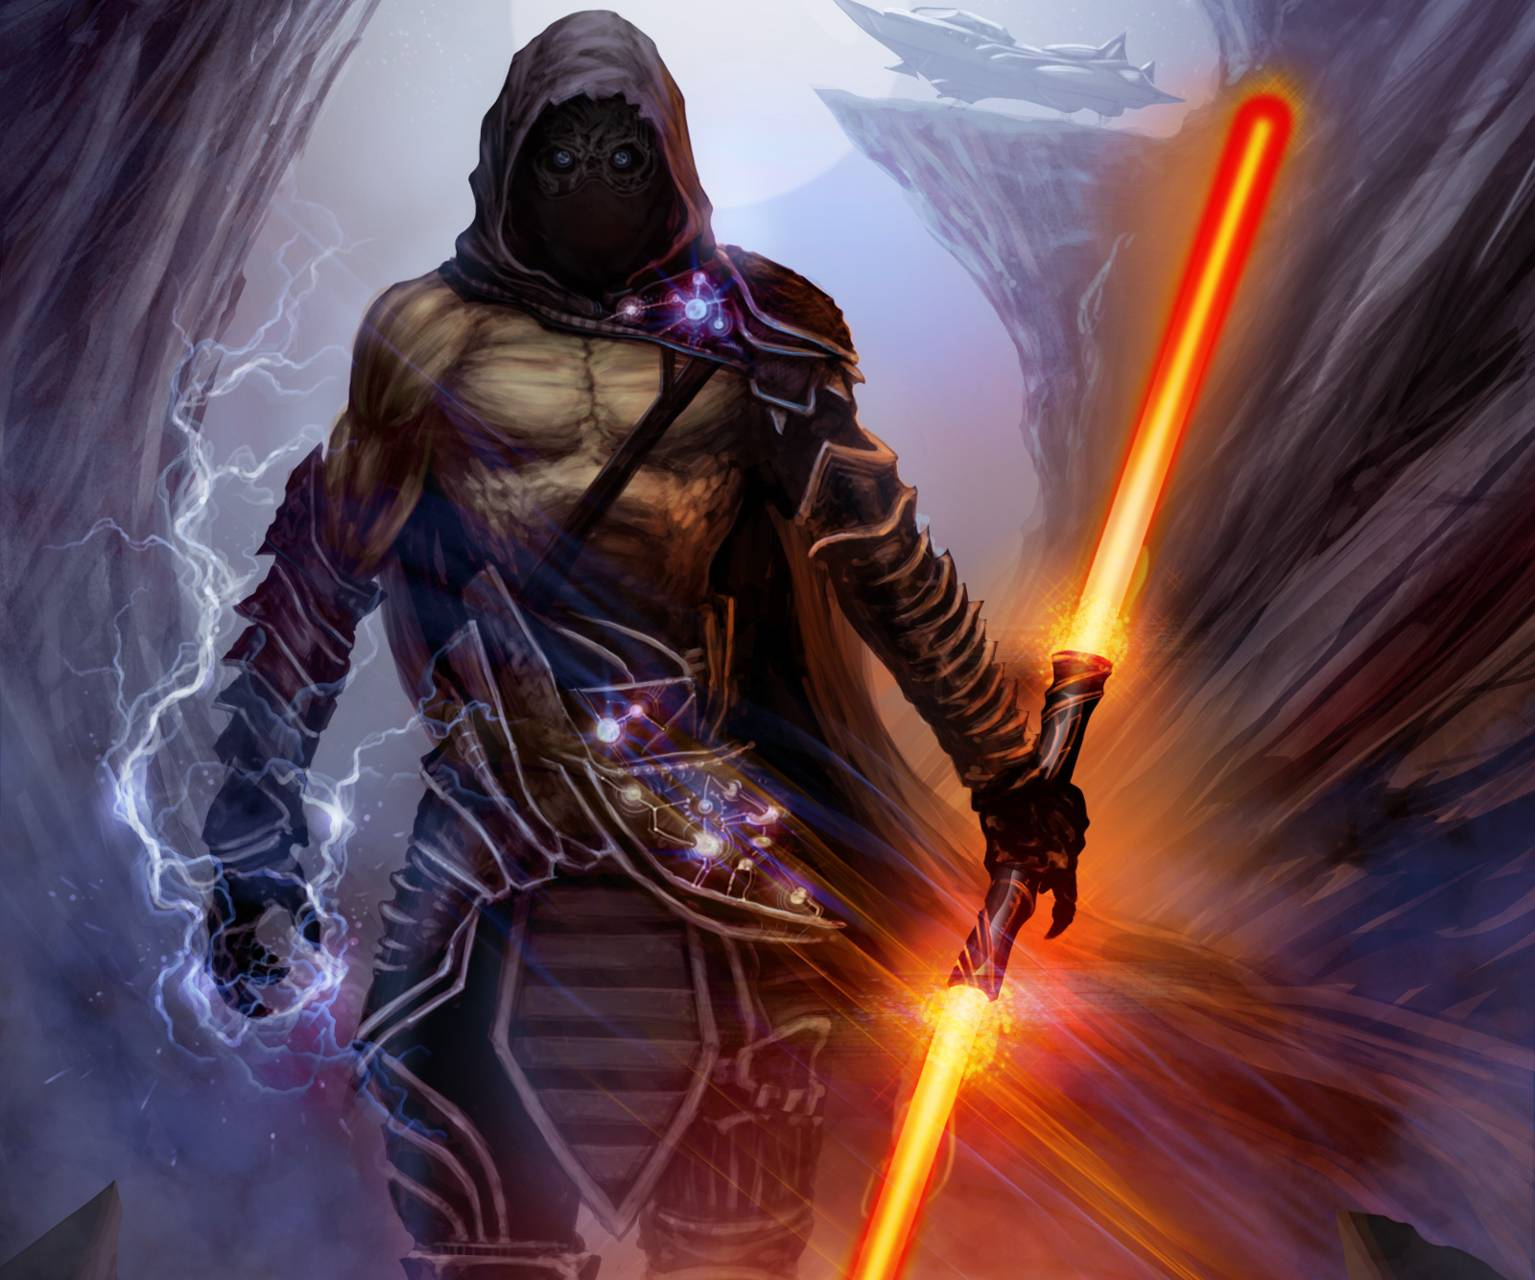 Sith Lord Wallpaper By Darthm21 9a Free On Zedge